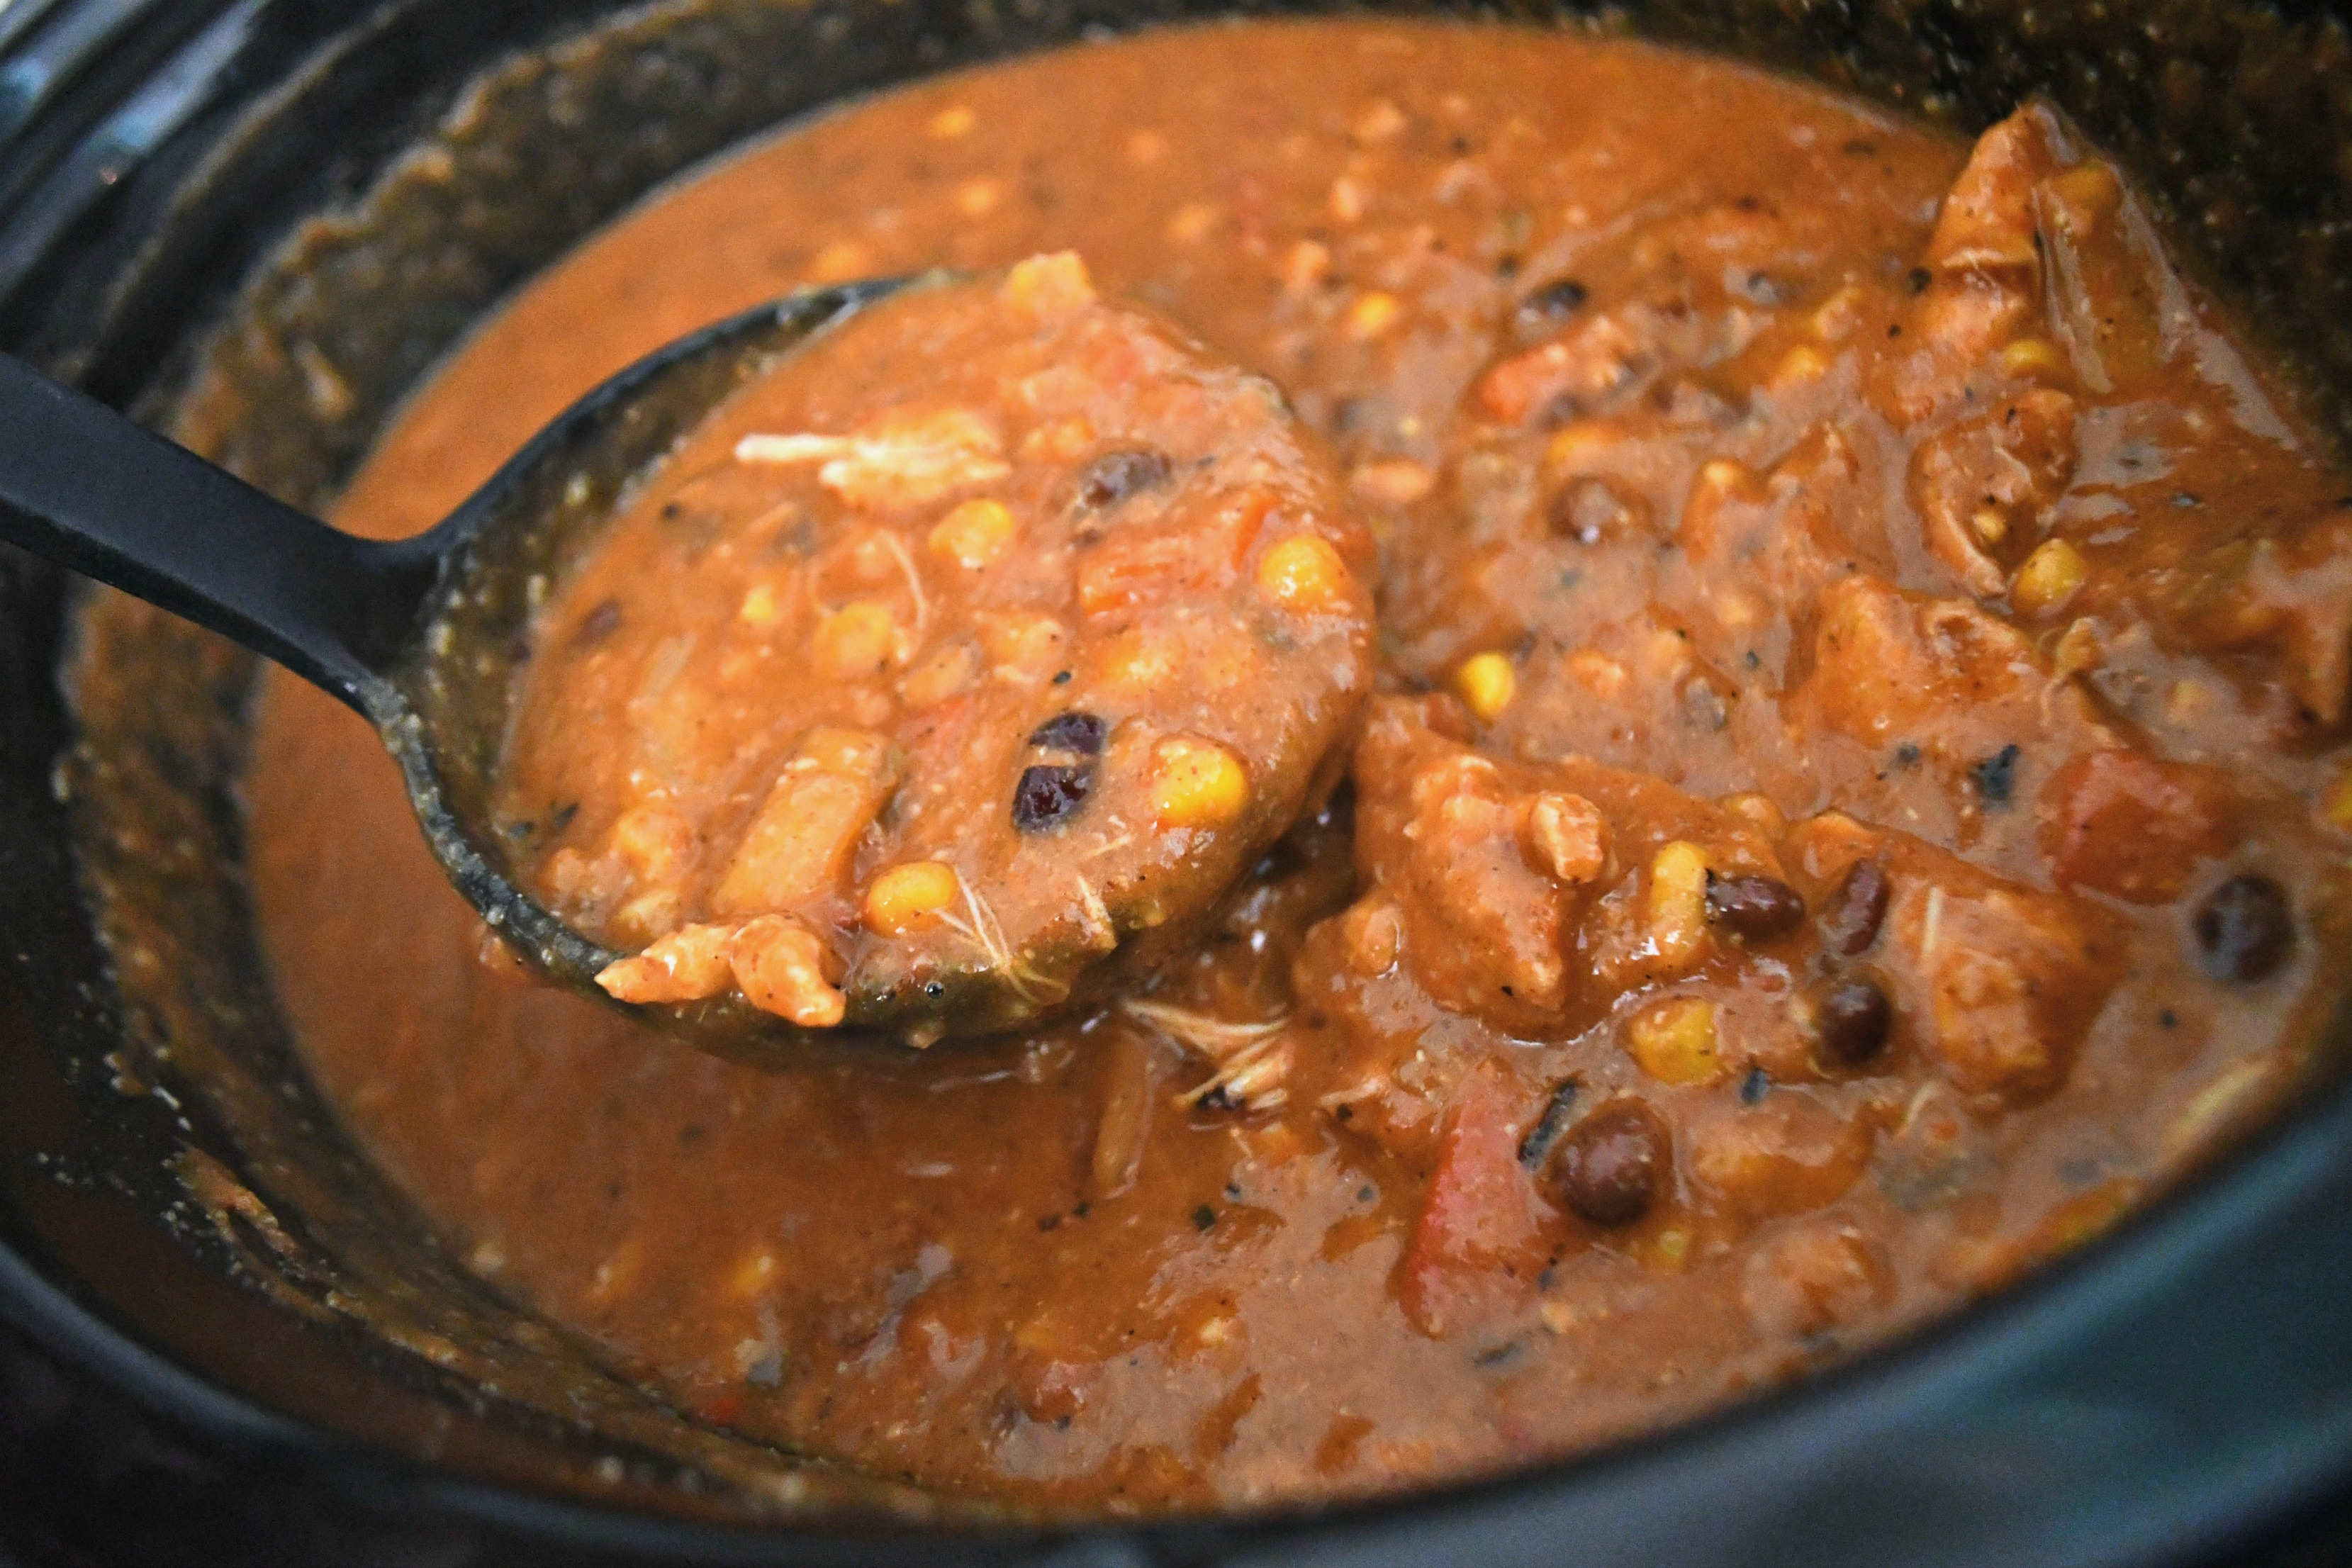 Slow Cooker Chicken Enchilada Soup – After cooking and scooped up in a ladle